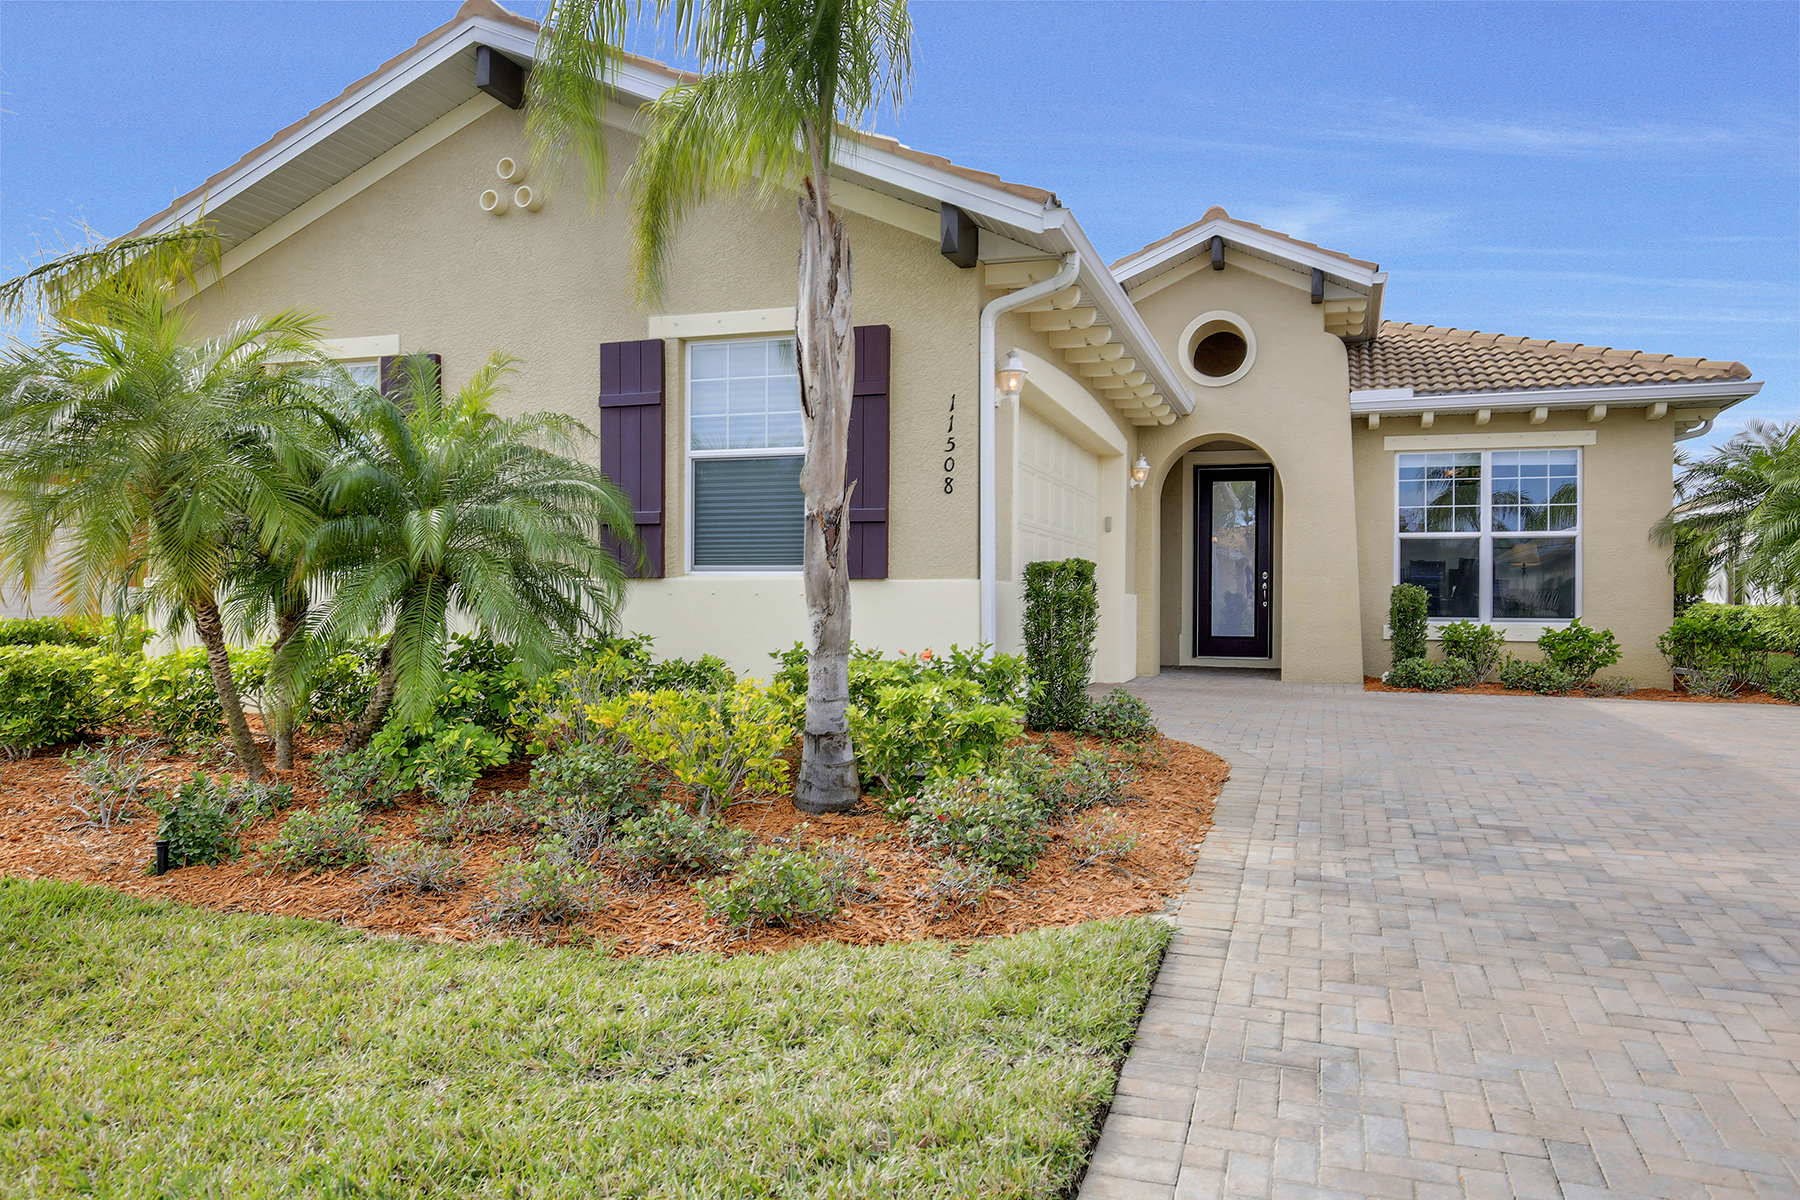 Single Family Home for Sale at PELICAN PRESERVE - CARENA 11508 Giulia Dr, Fort Myers, Florida 33913 United States